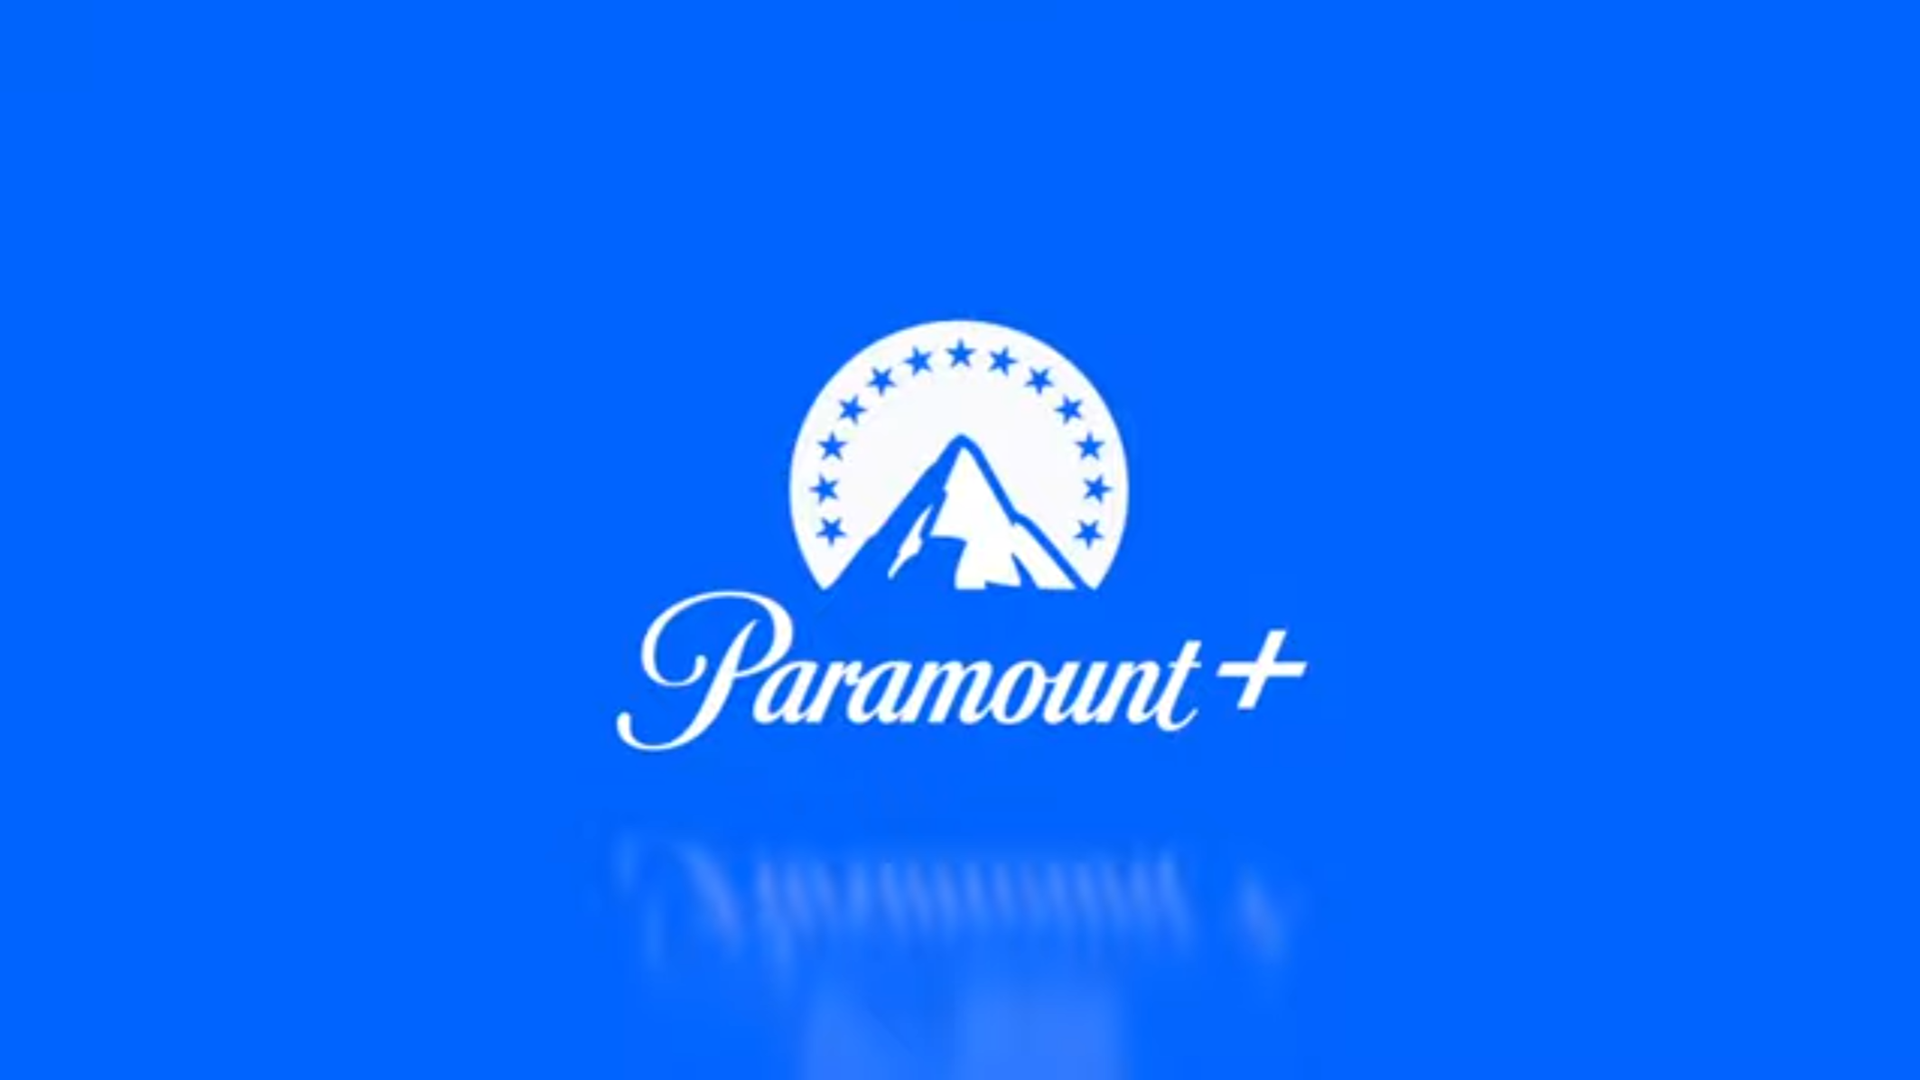 Goodbye CBS All Access, Hello Paramount+ And Tons of New Content